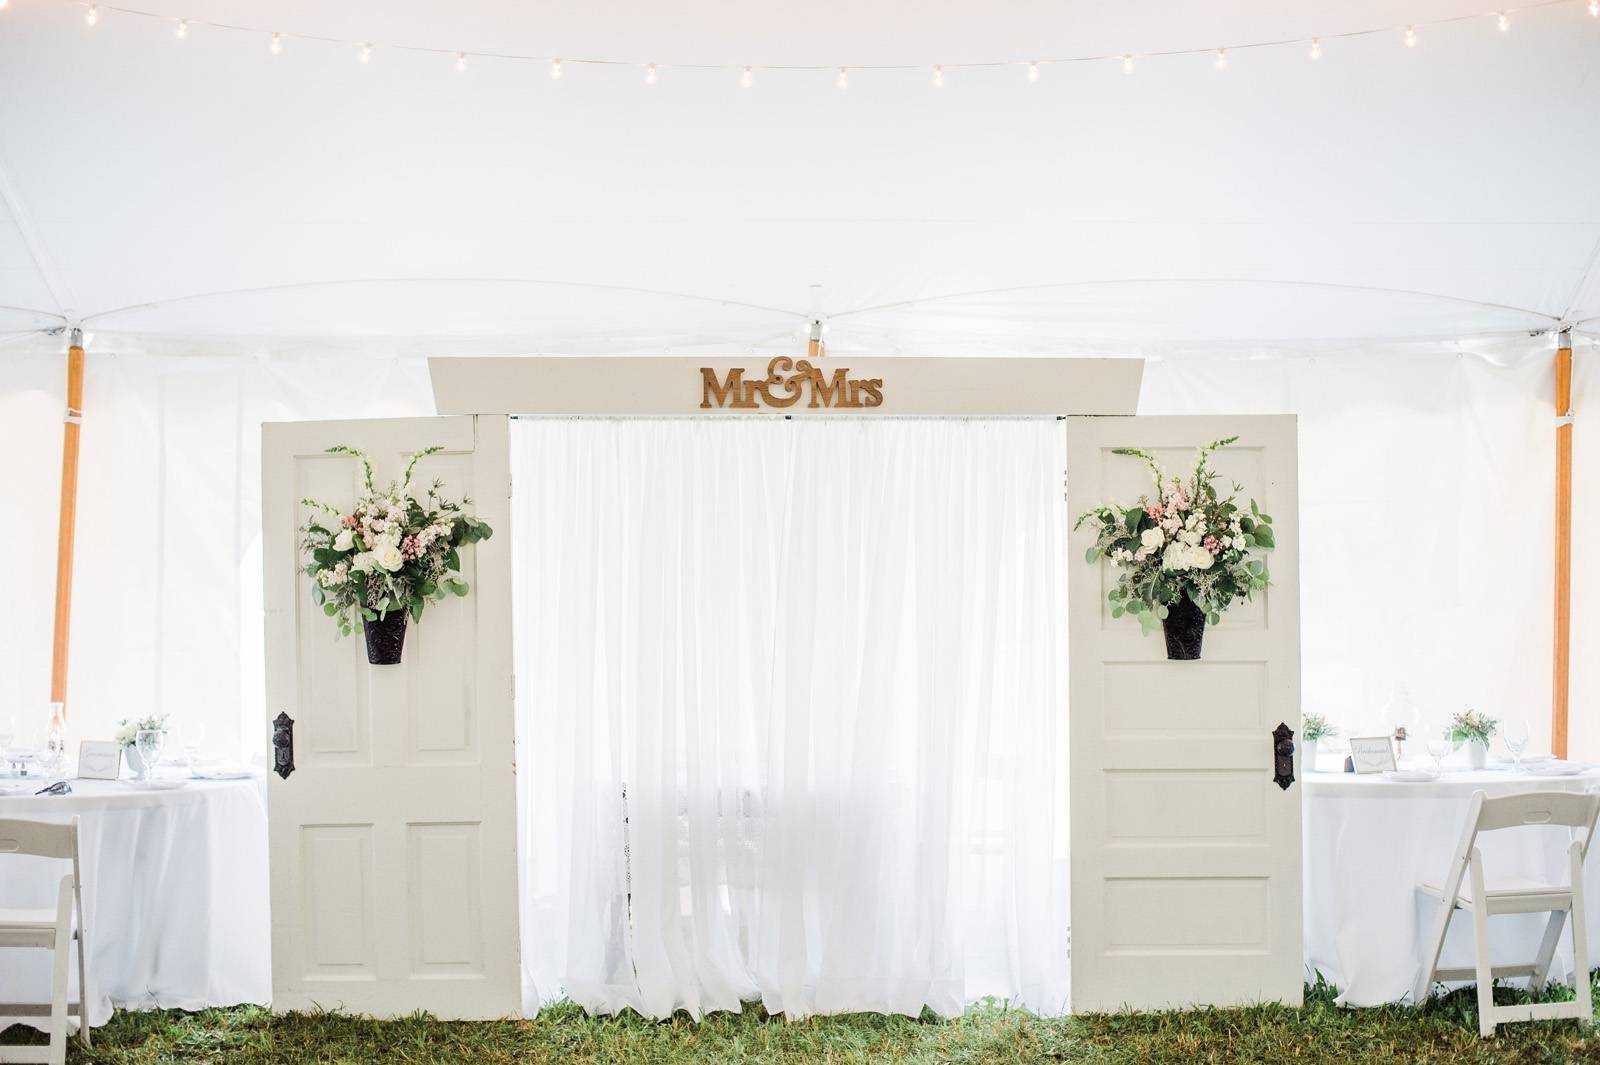 Ceremony backdrop featuring white doors for tented ceremony